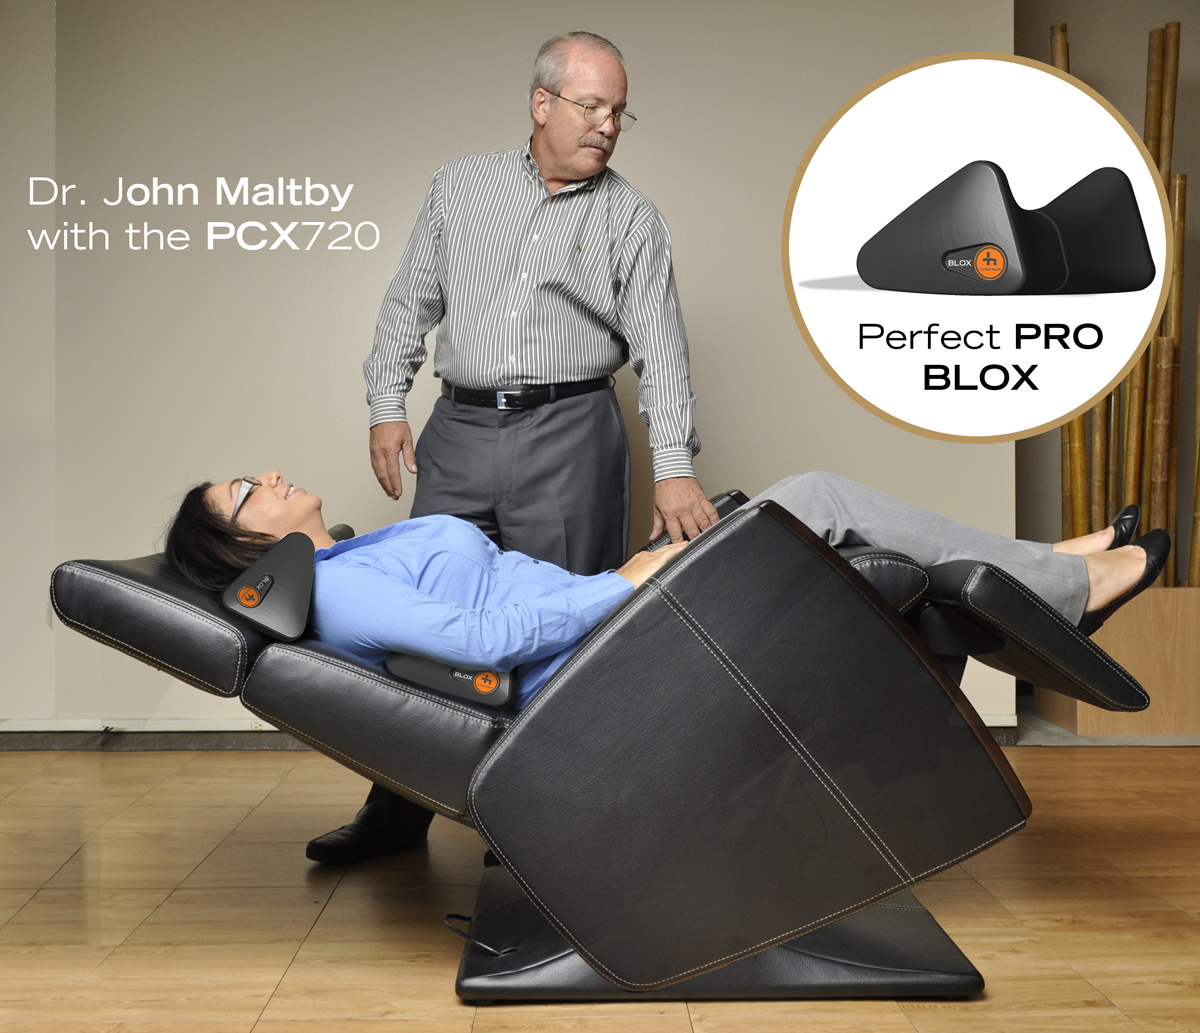 Perfect Chair® PCX-720 and Perfect PRO BloxPerfect Chair® PCX-720 and Perfect PRO Blox  sc 1 st  Online Press Release Distribution Service & Human Touch® Goes Beyond Zero Gravity With the PCX-720 the Next ... islam-shia.org